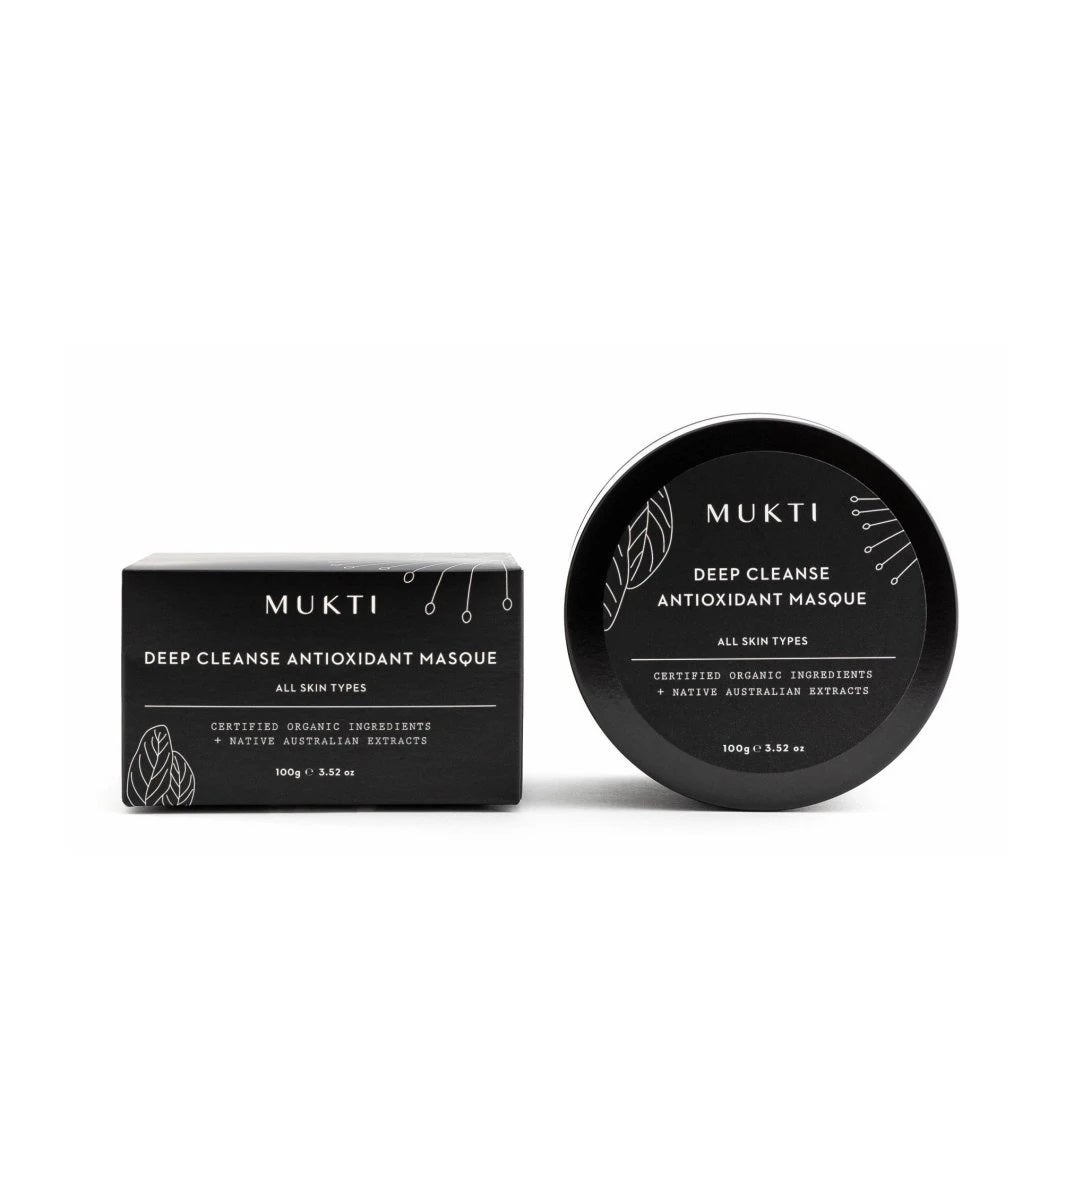 MU012 MUKTI Deep Cleanse Antioxidant Masque 有機深層潔淨面膜 [100g]